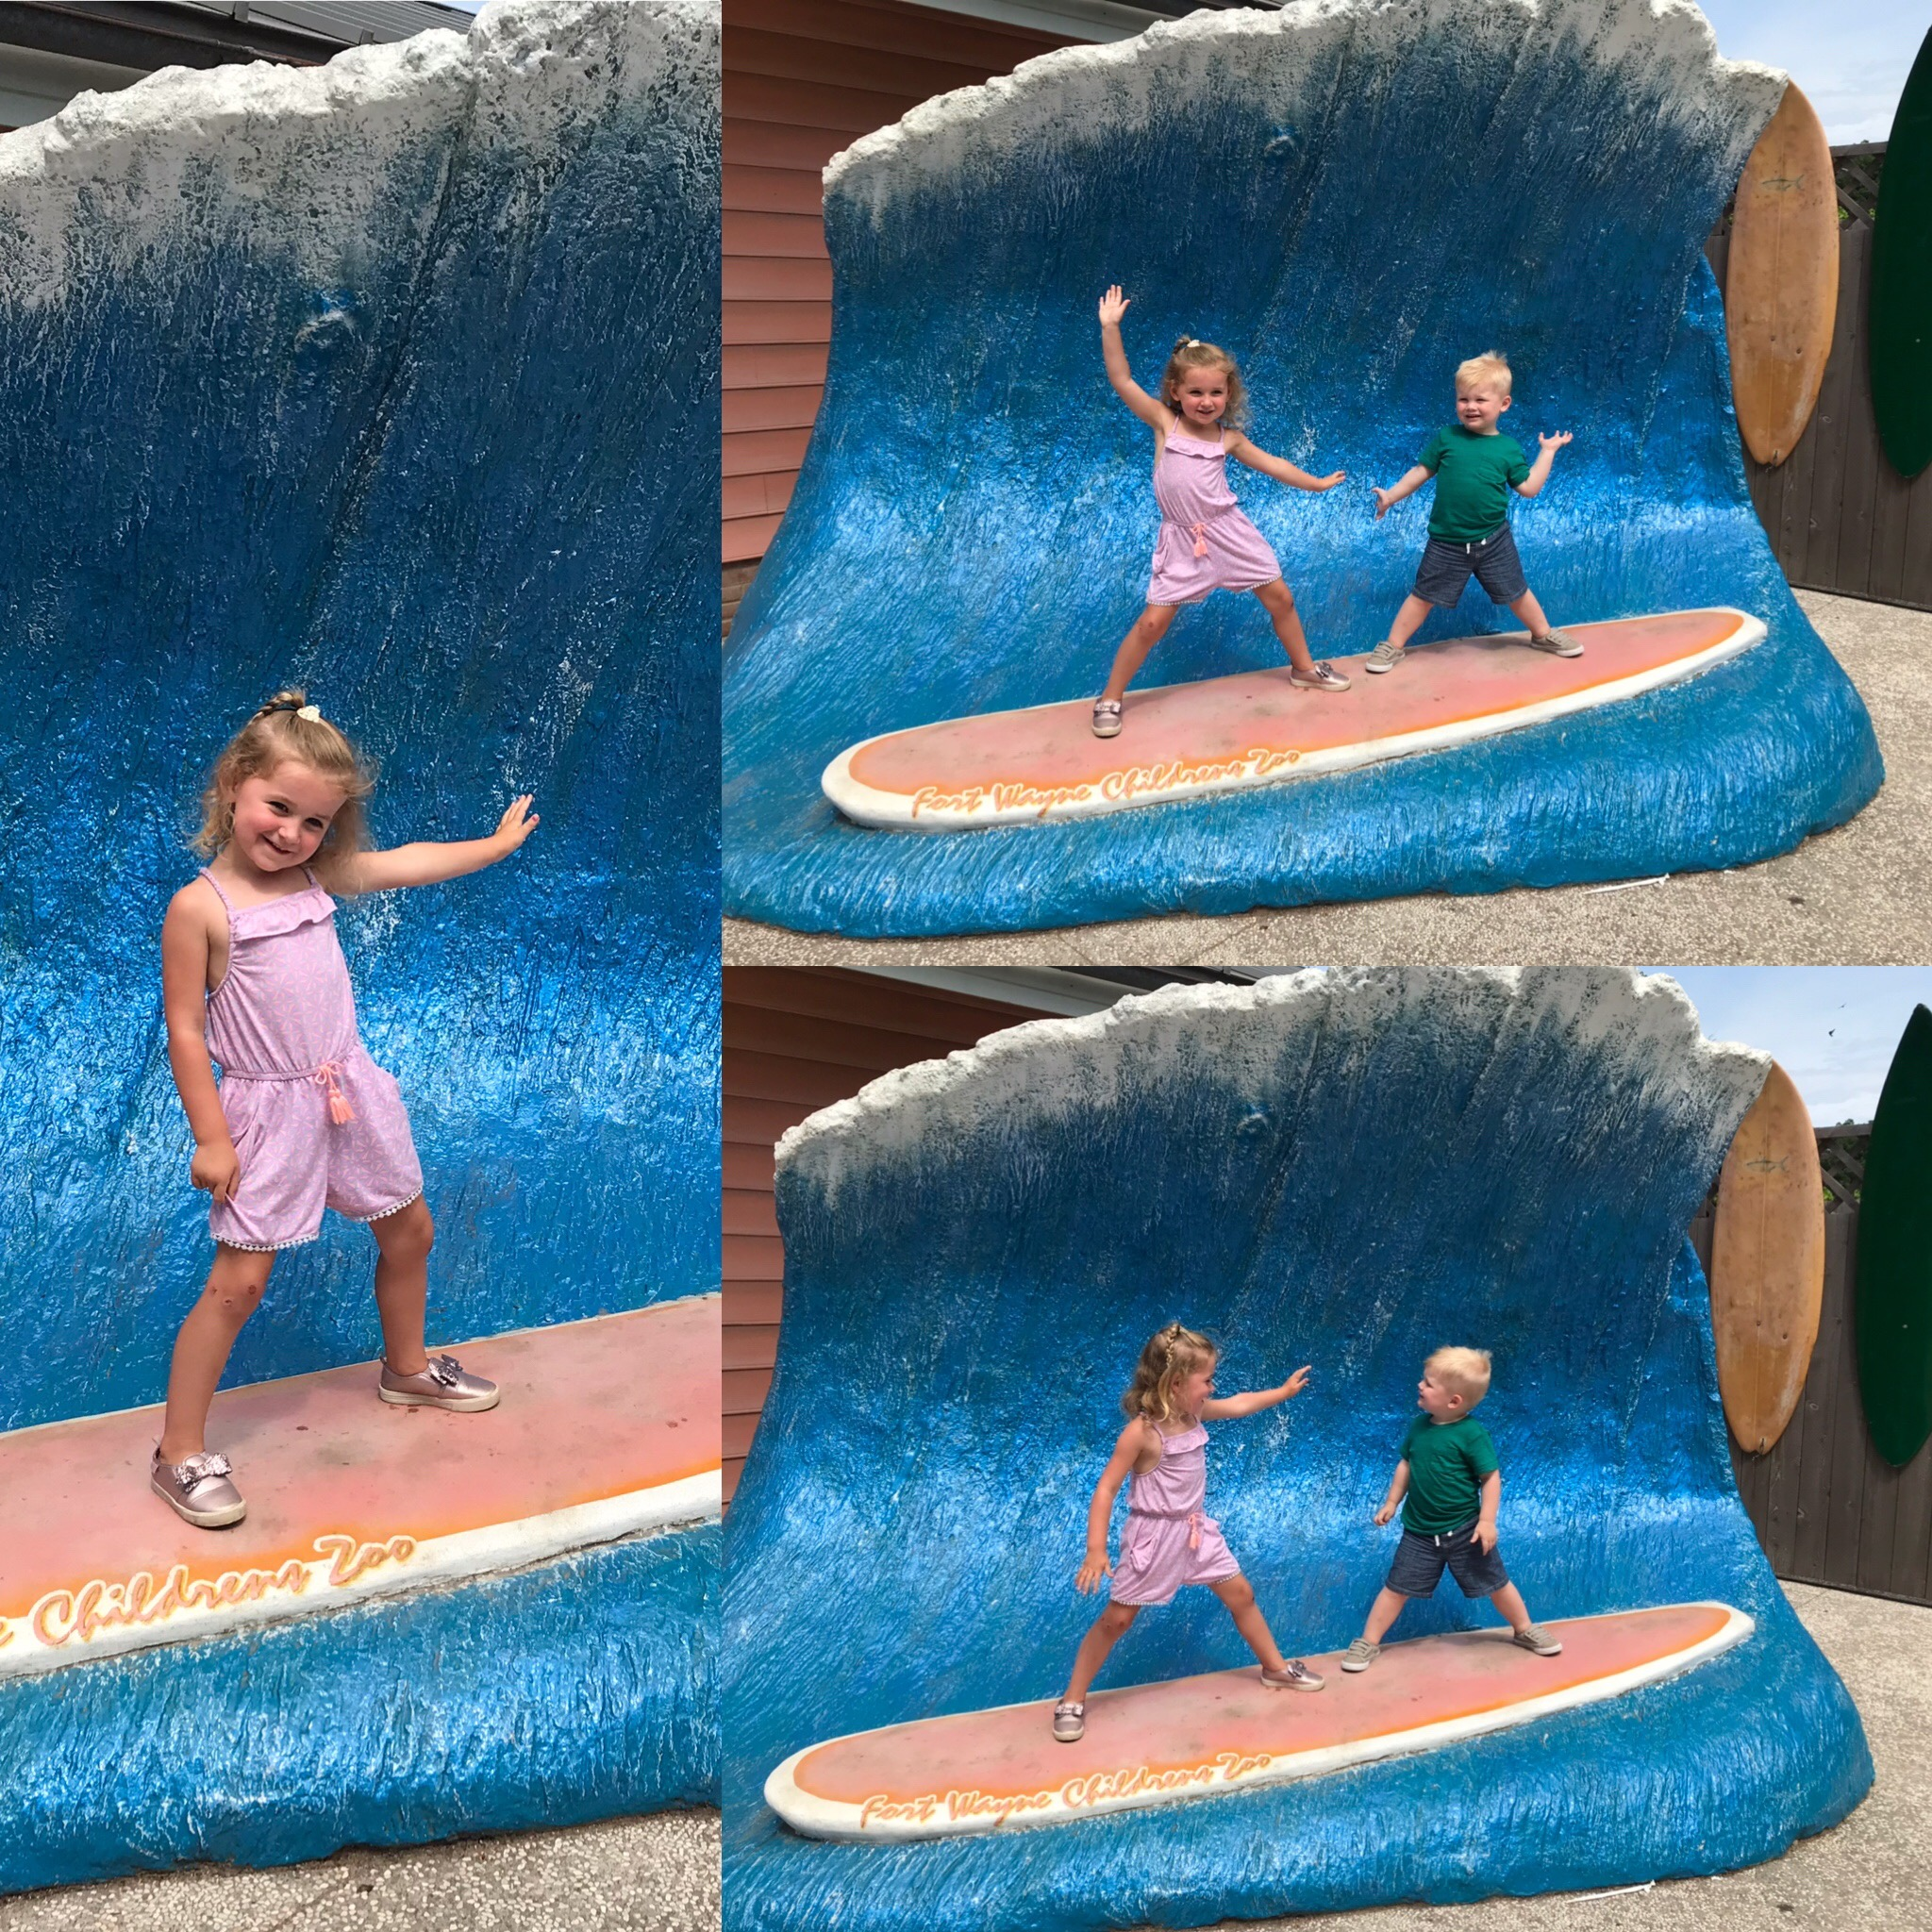 Fort Wayne Childrens Zoo surfing.jpeg